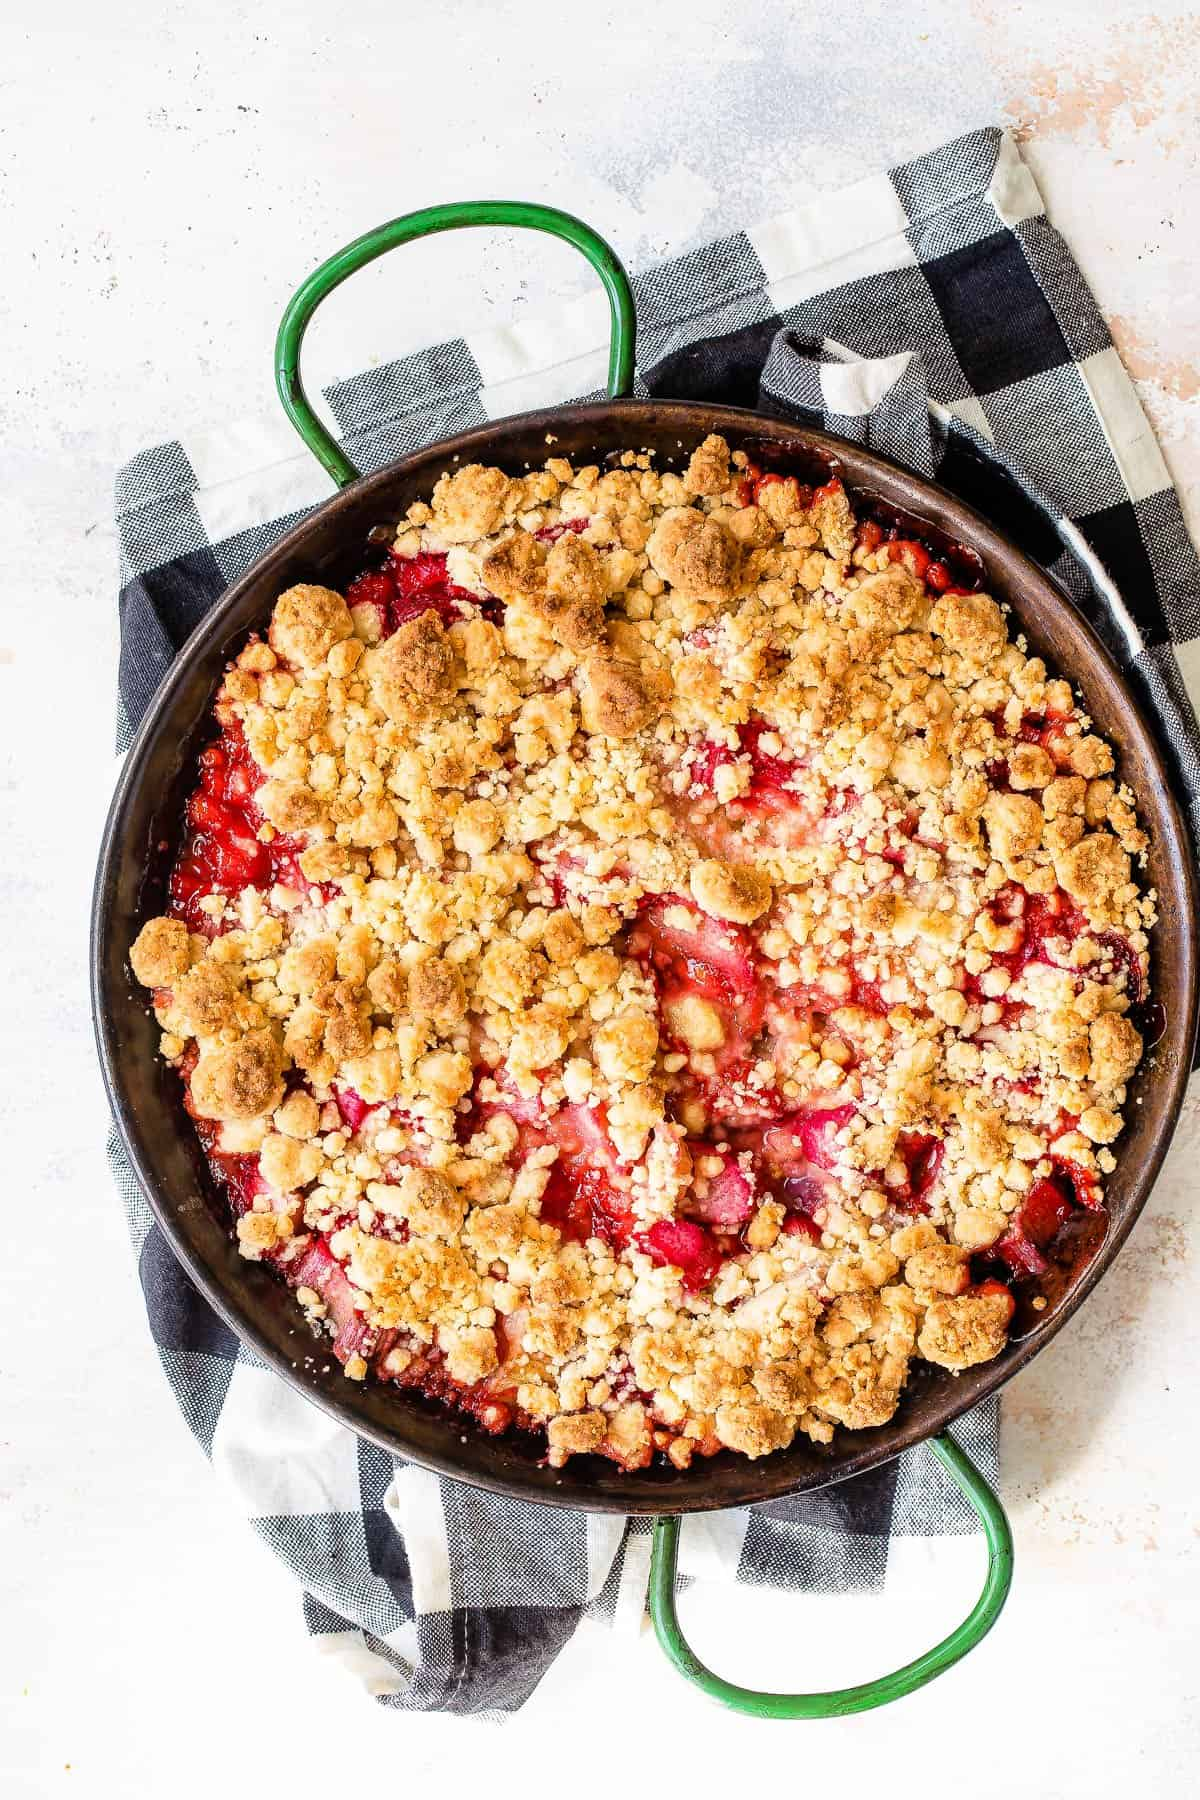 Baked strawberry rhubarb crumble.